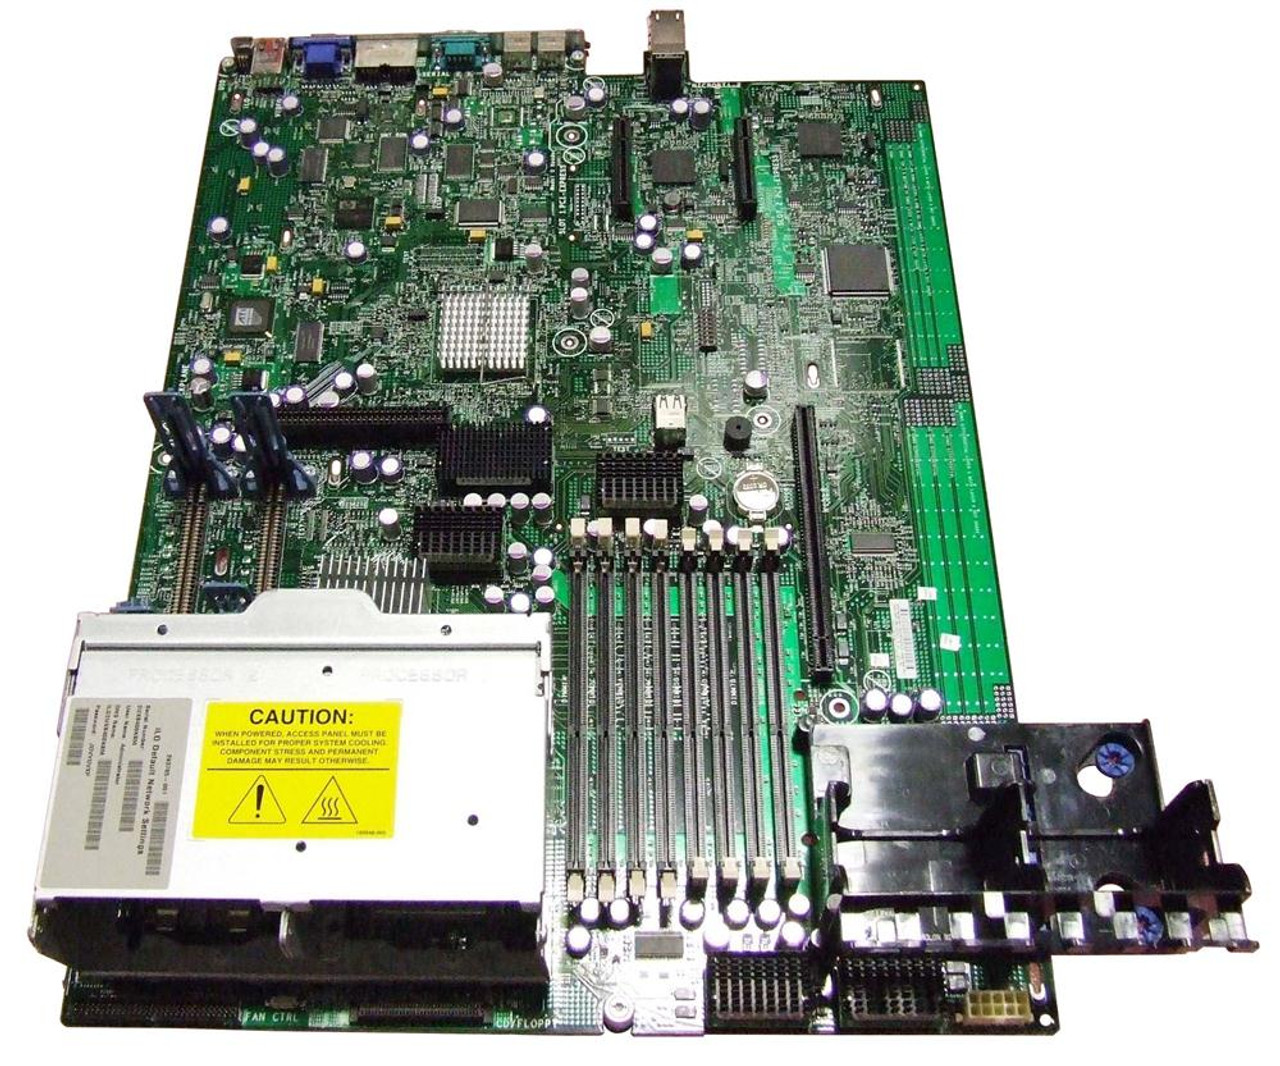 436526-001-R - HP System Board (Motherboard) with Processor Cage for HP  ProLiant DL380 G5 Server